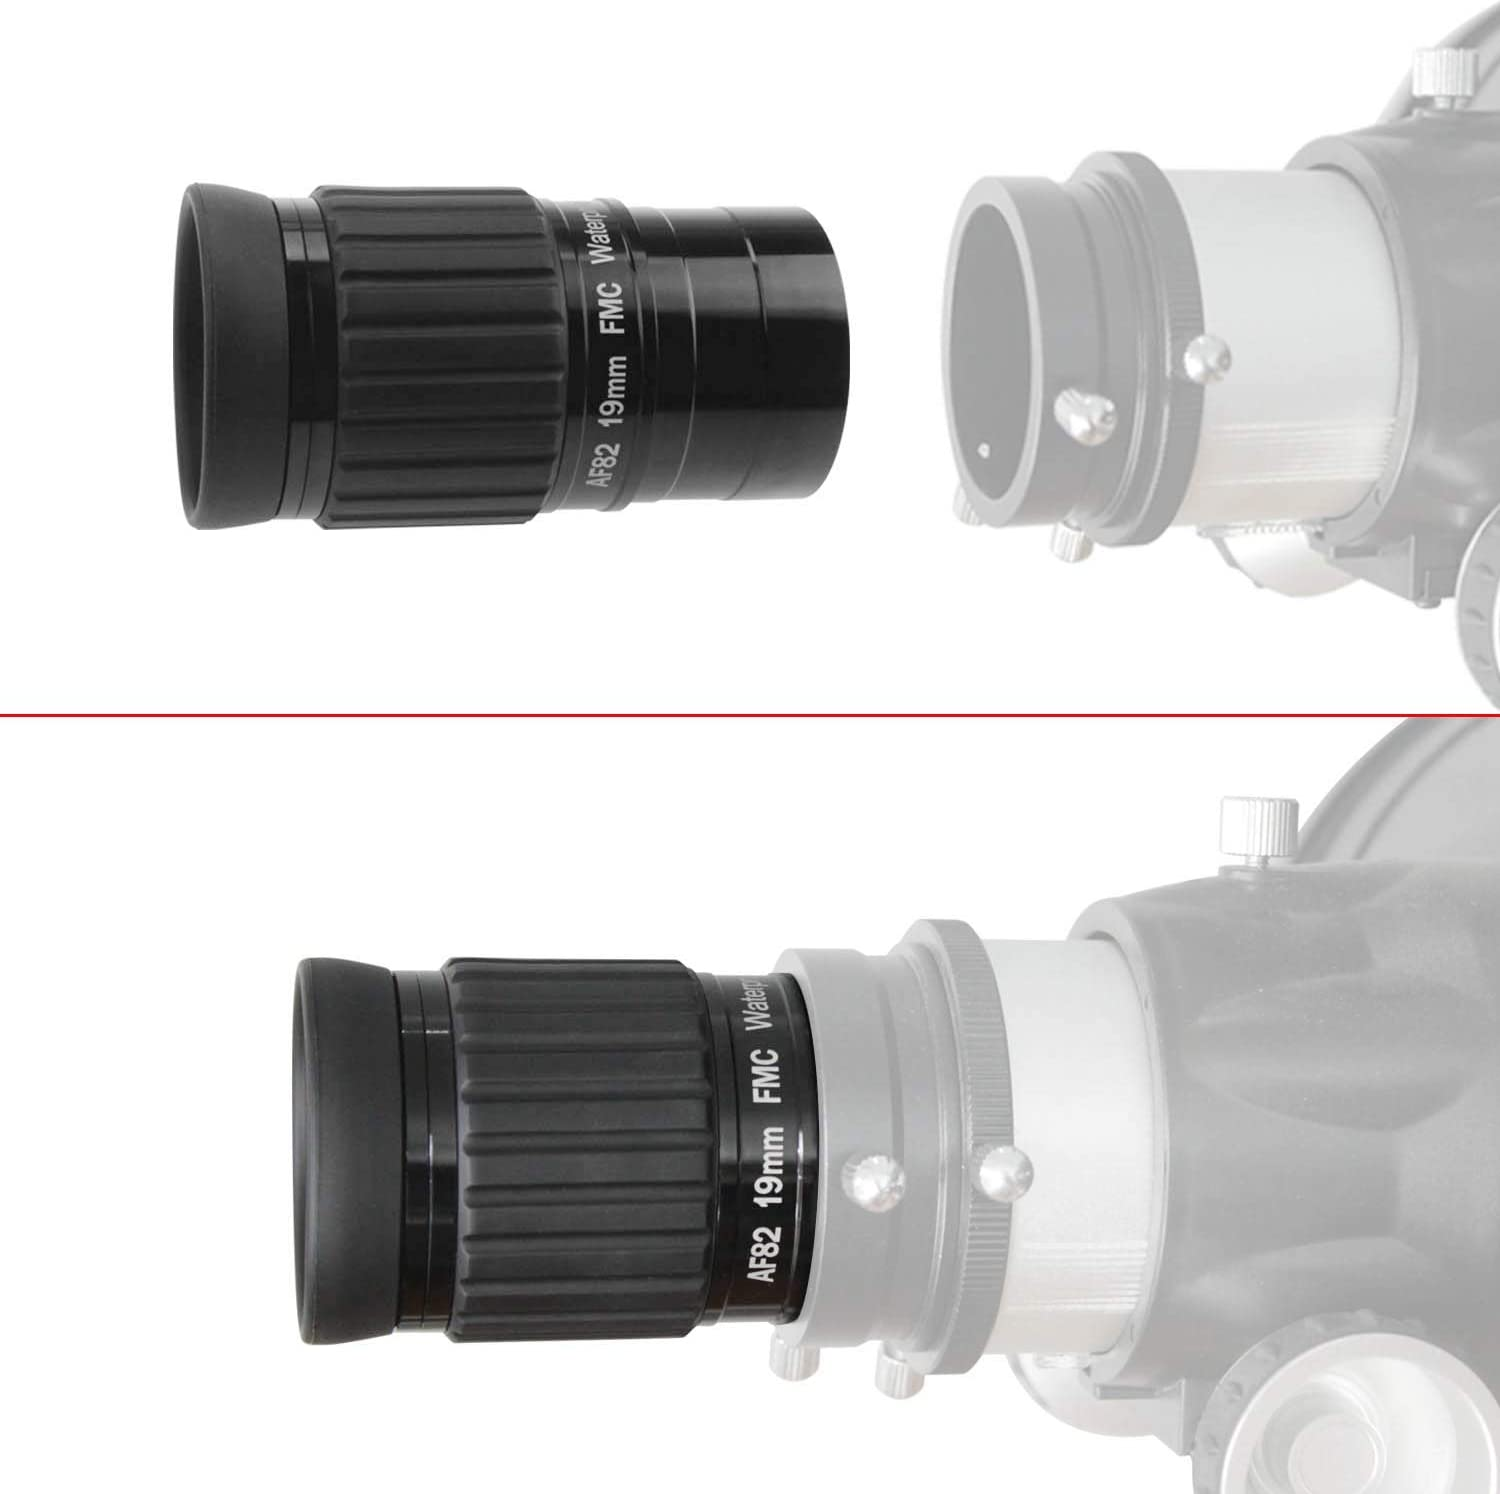 Waterproof /& Fogproof Allows Any Water Enter The Interior and Always Enjoy an unobstructed View Astromania 1.25-82 Degree SWA-10mm Compact Eyepiece